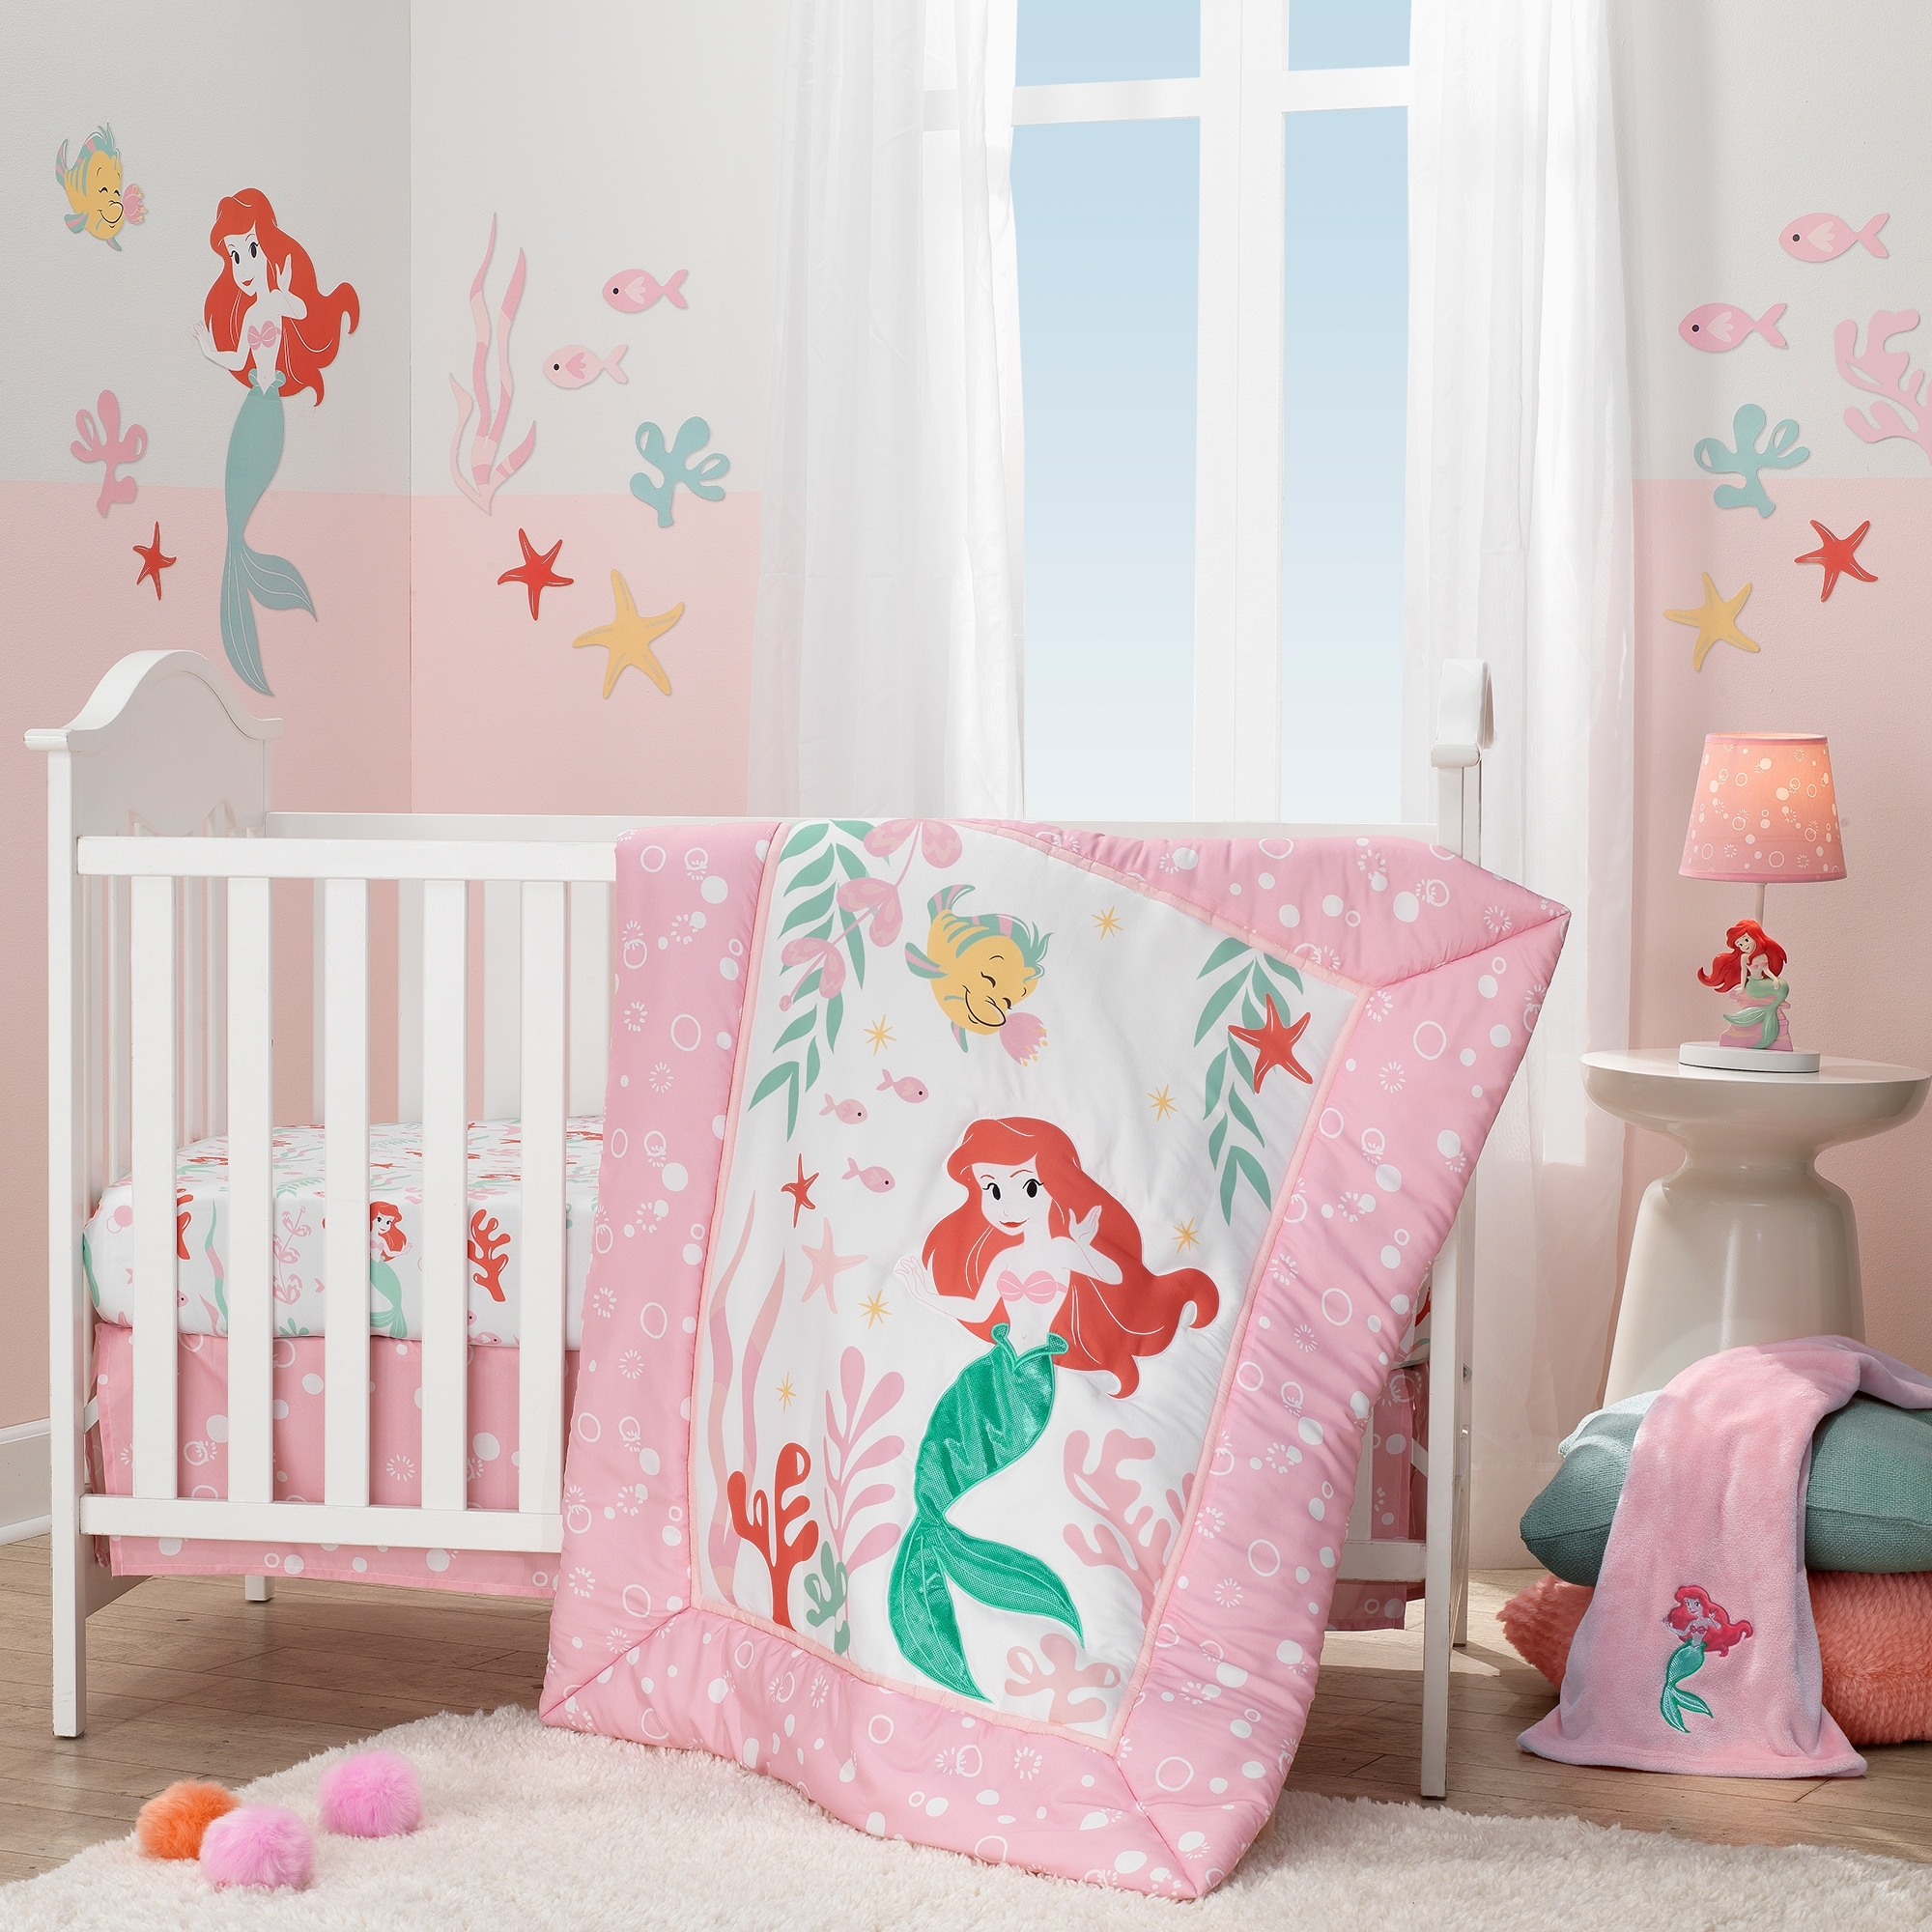 Shop Black Friday Deals On Disney Baby Ariel S Grotto Pink White Mermaid 3 Piece Crib Bedding Set By Lambs Ivy Overstock 27750692